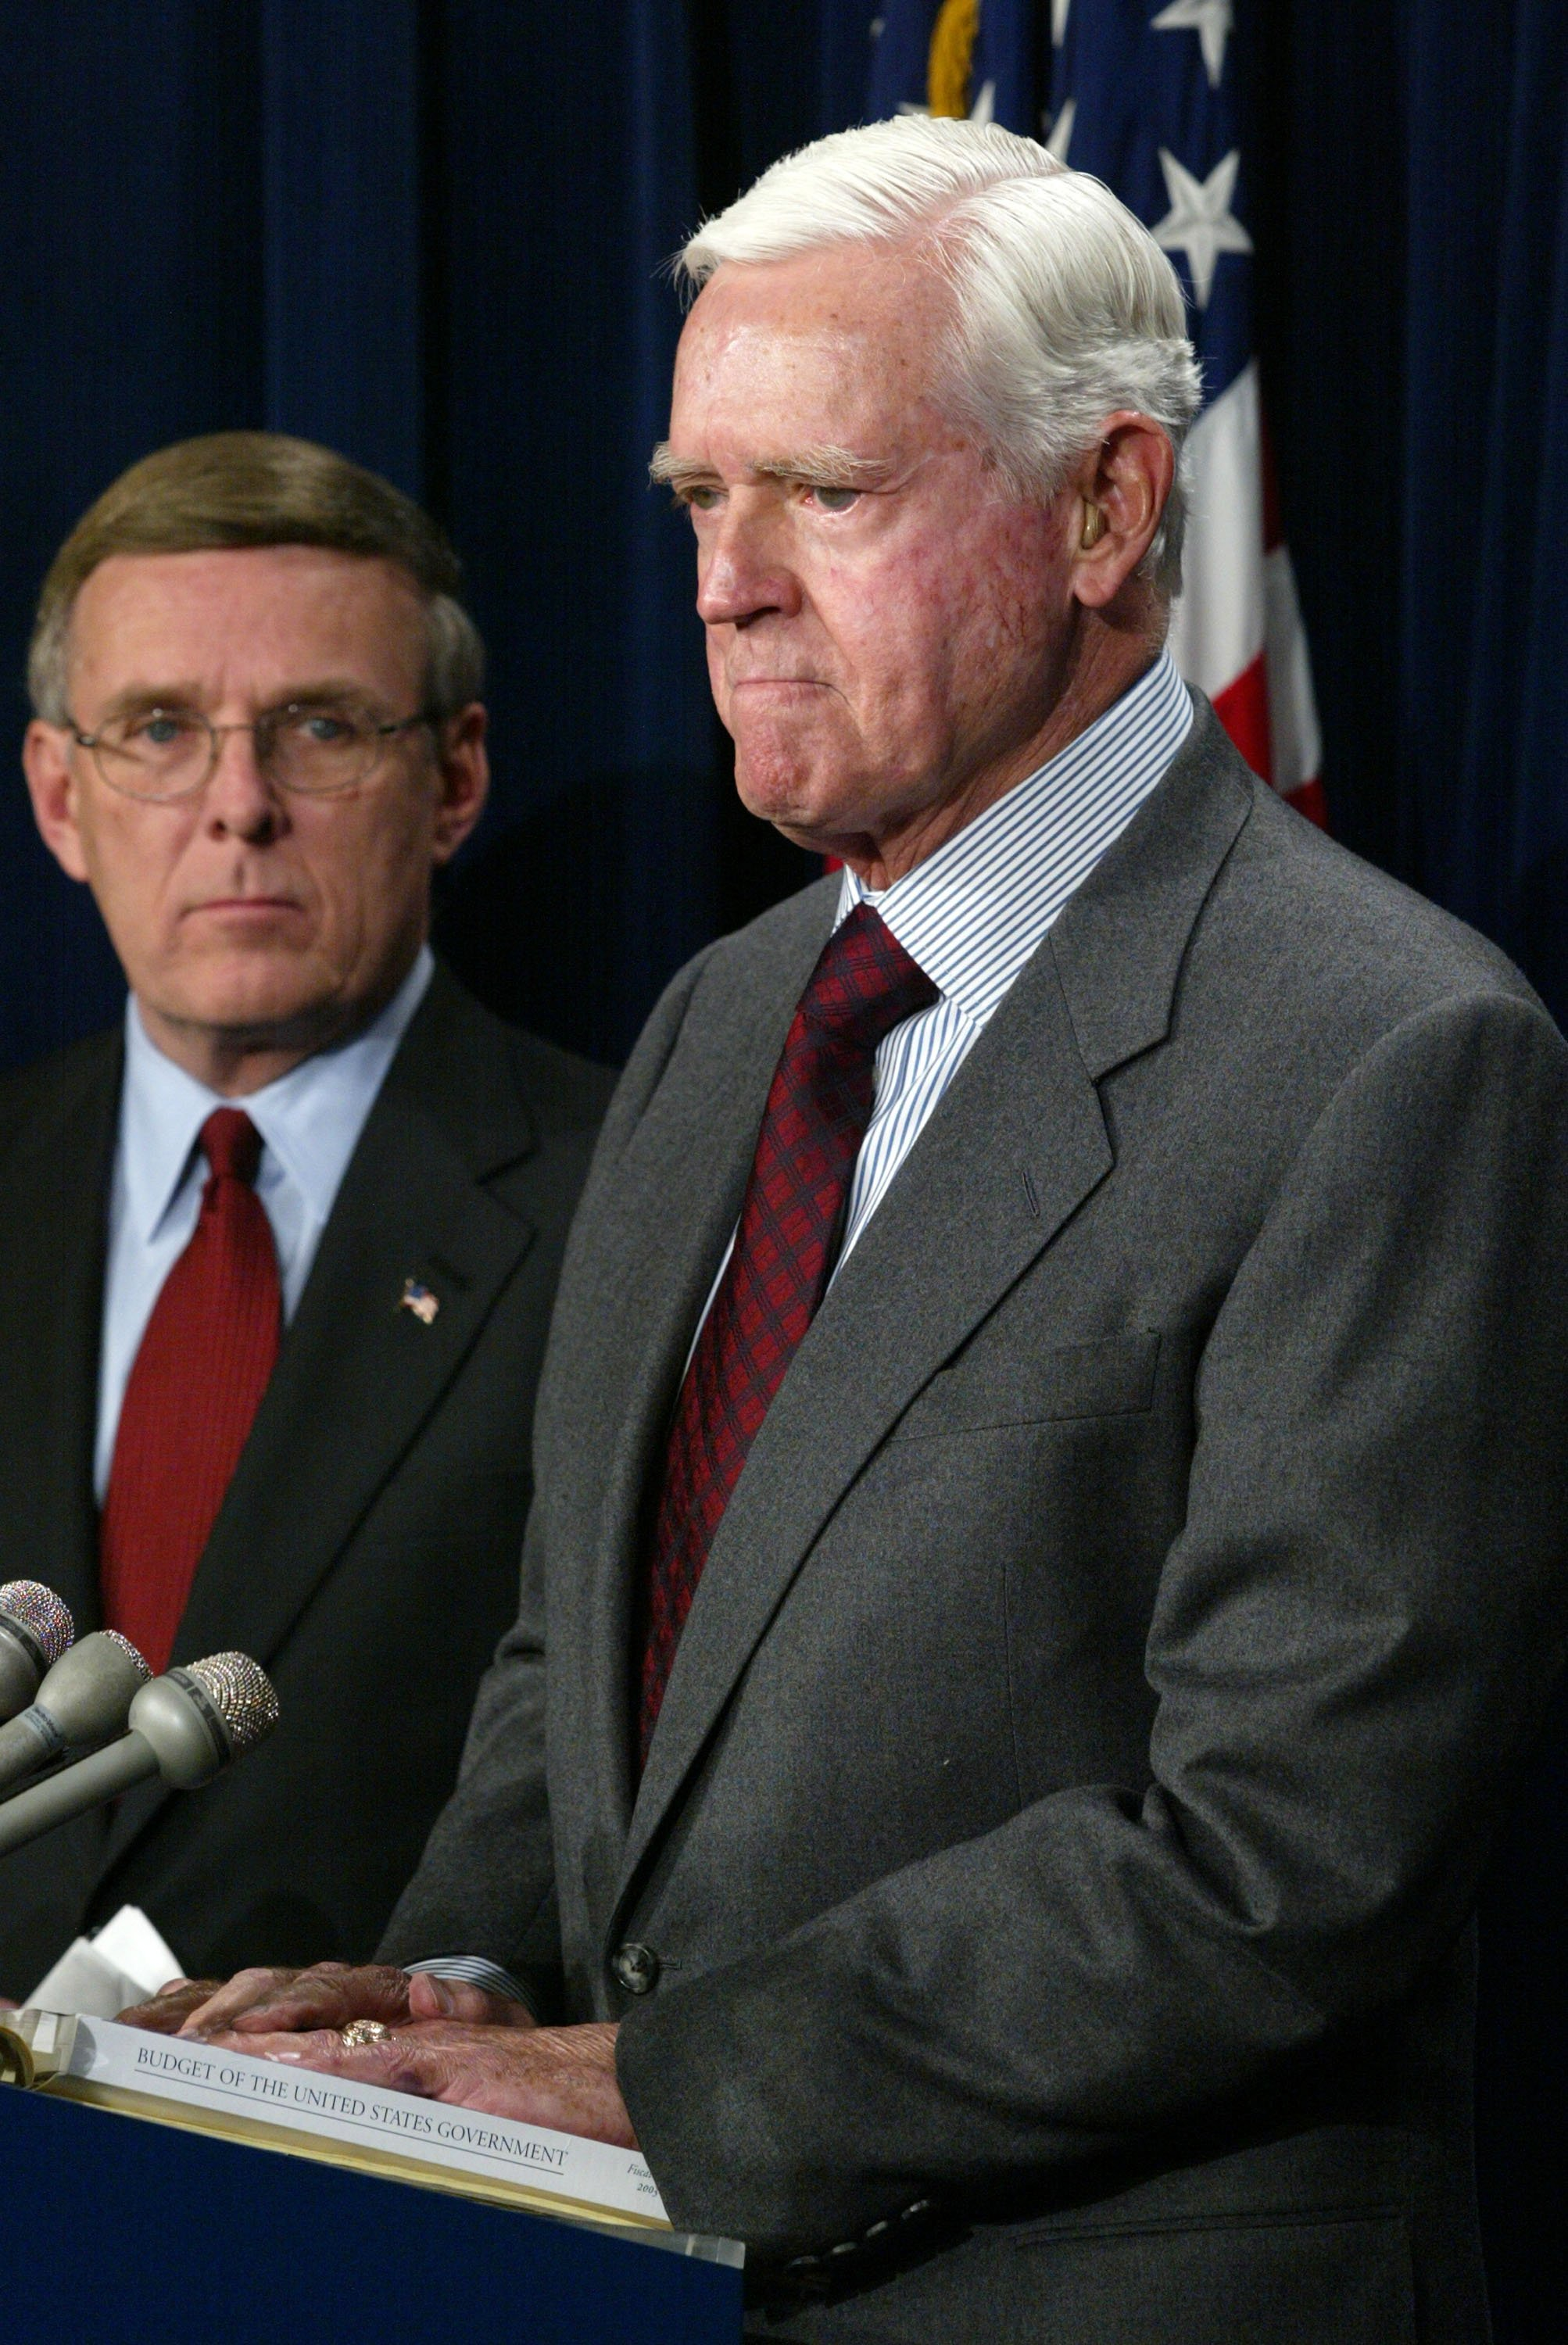 Senator Ernest Hollings standing next to Senator Byron Dorgan during a press conference on Capitol Hill | Photo: Getty Images